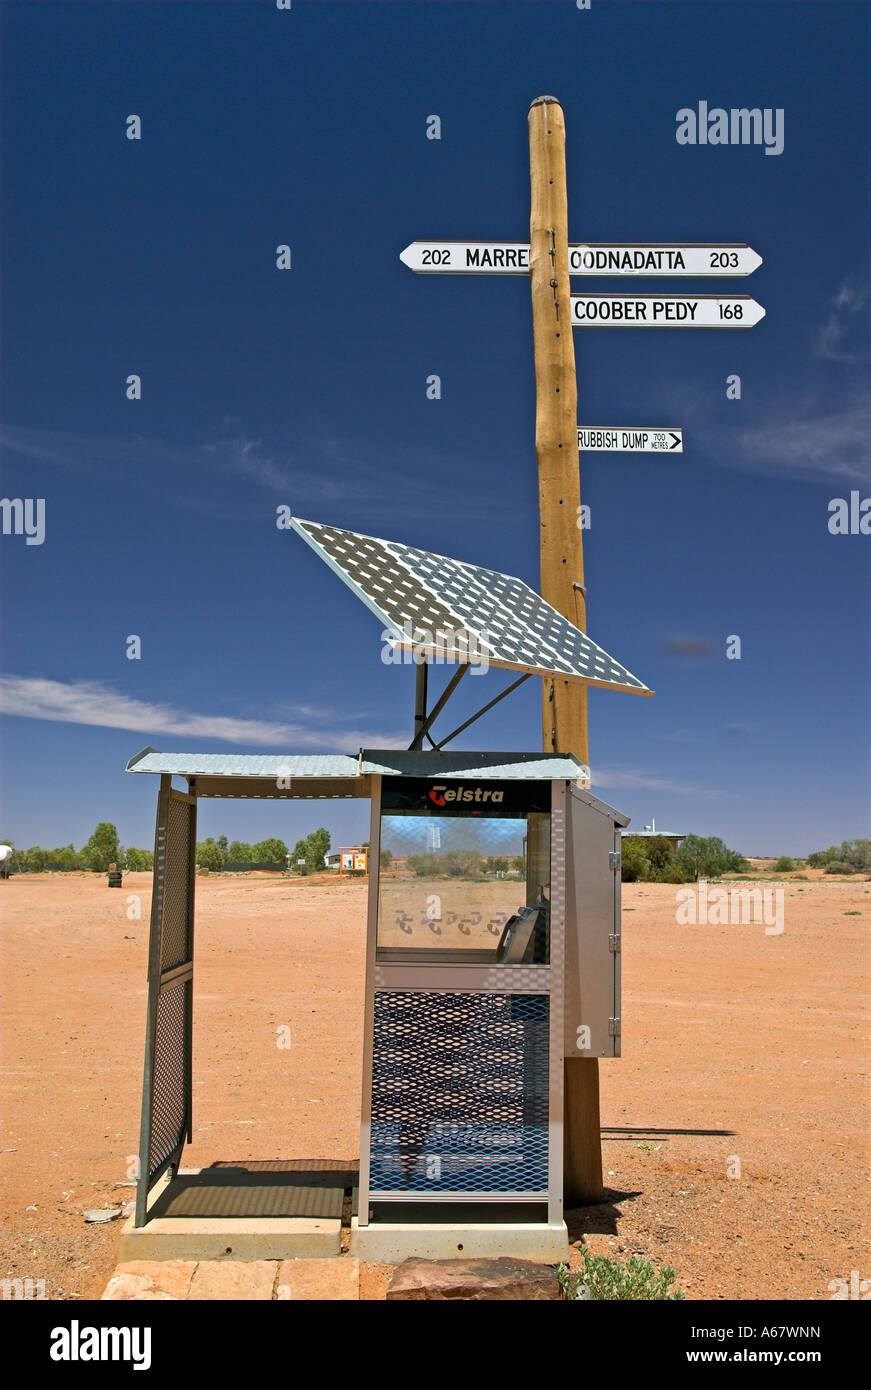 Phone booth driven by solar energy in William Creek, South Australia, Australia - Stock Image